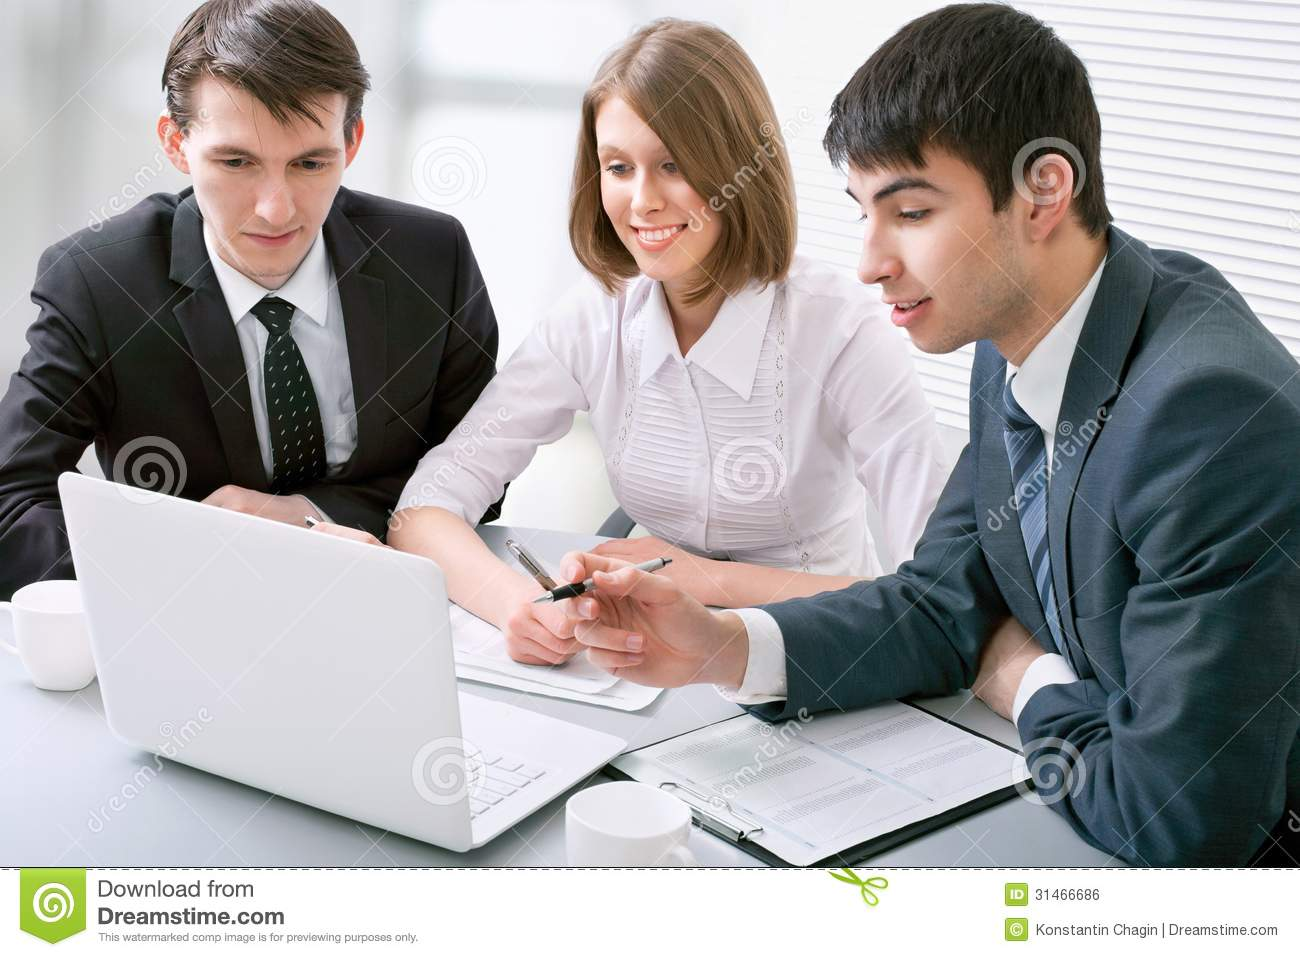 Business People Royalty Free Stock Image - Image: 31466686